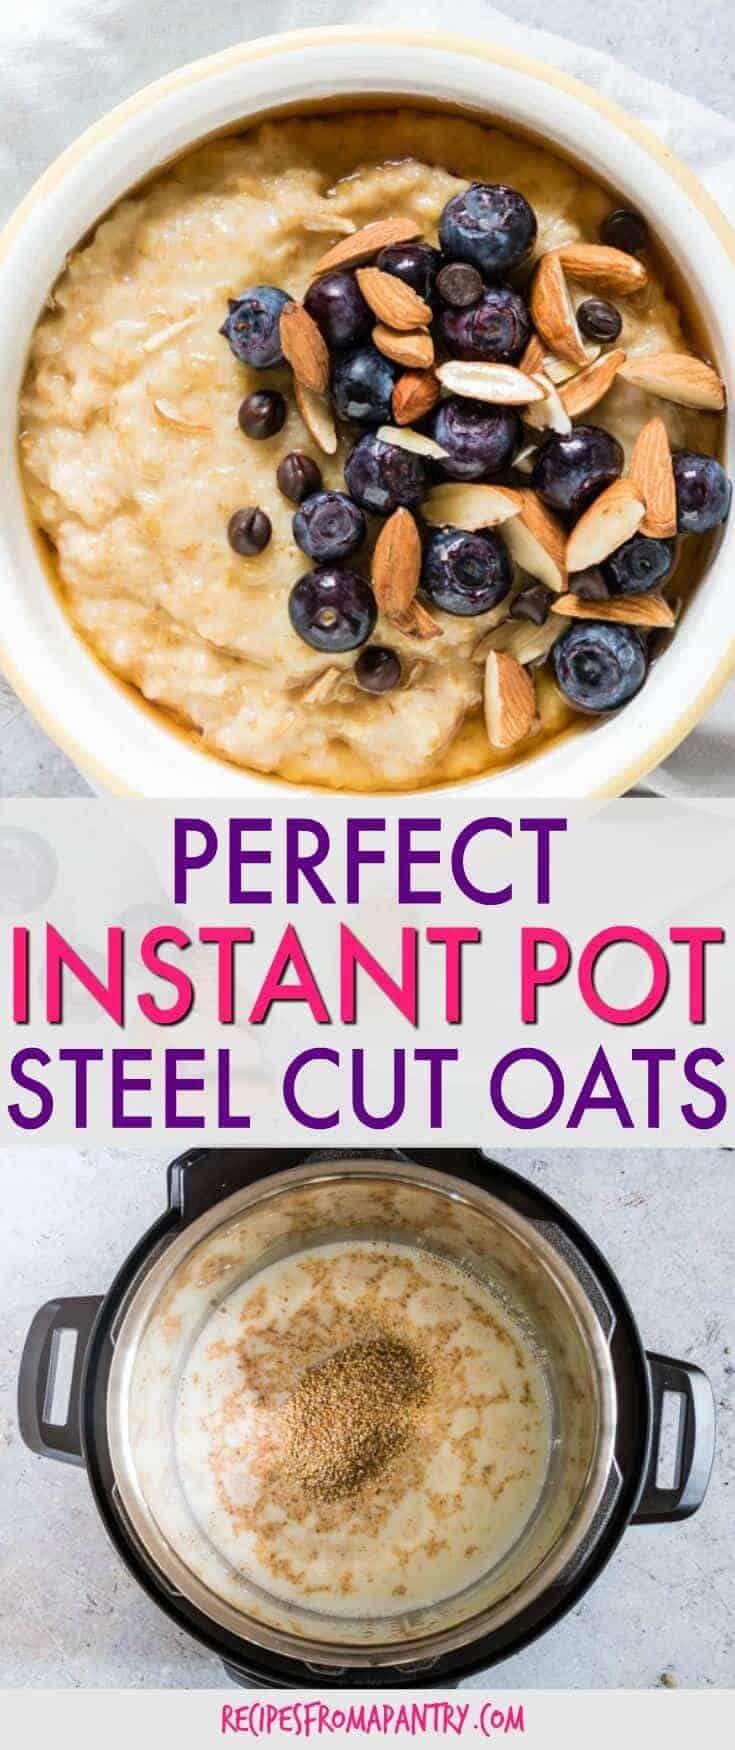 This EASY Instant Pot Steel Cut Oats recipe will make you excited for breakfast. Ready in just about 30 mins total, it makes a perfect Instant Pot breakfast recipe. #oats #oatmeal #instantpot #breakfast #steelcutoats #steelcutoatmeal #instantpotsteelcutoats